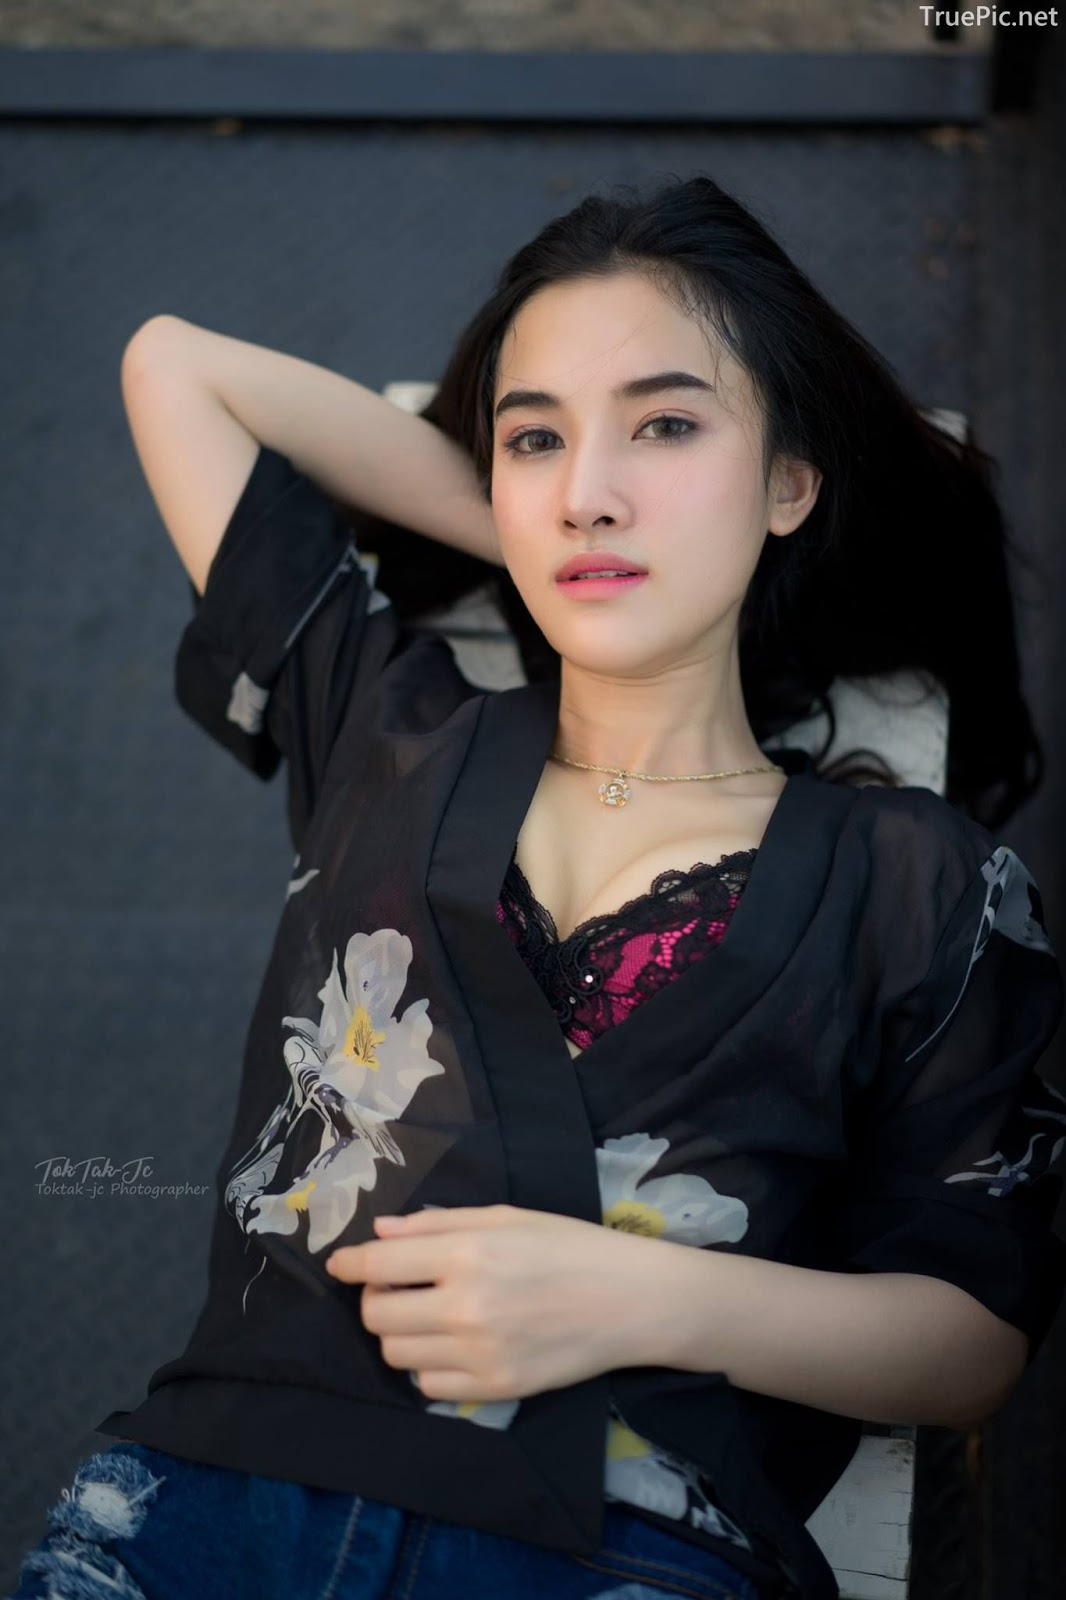 Thailand sexy angel Ploywarin Tippakorn - Black-pink bra and jean on sunset - Picture 7